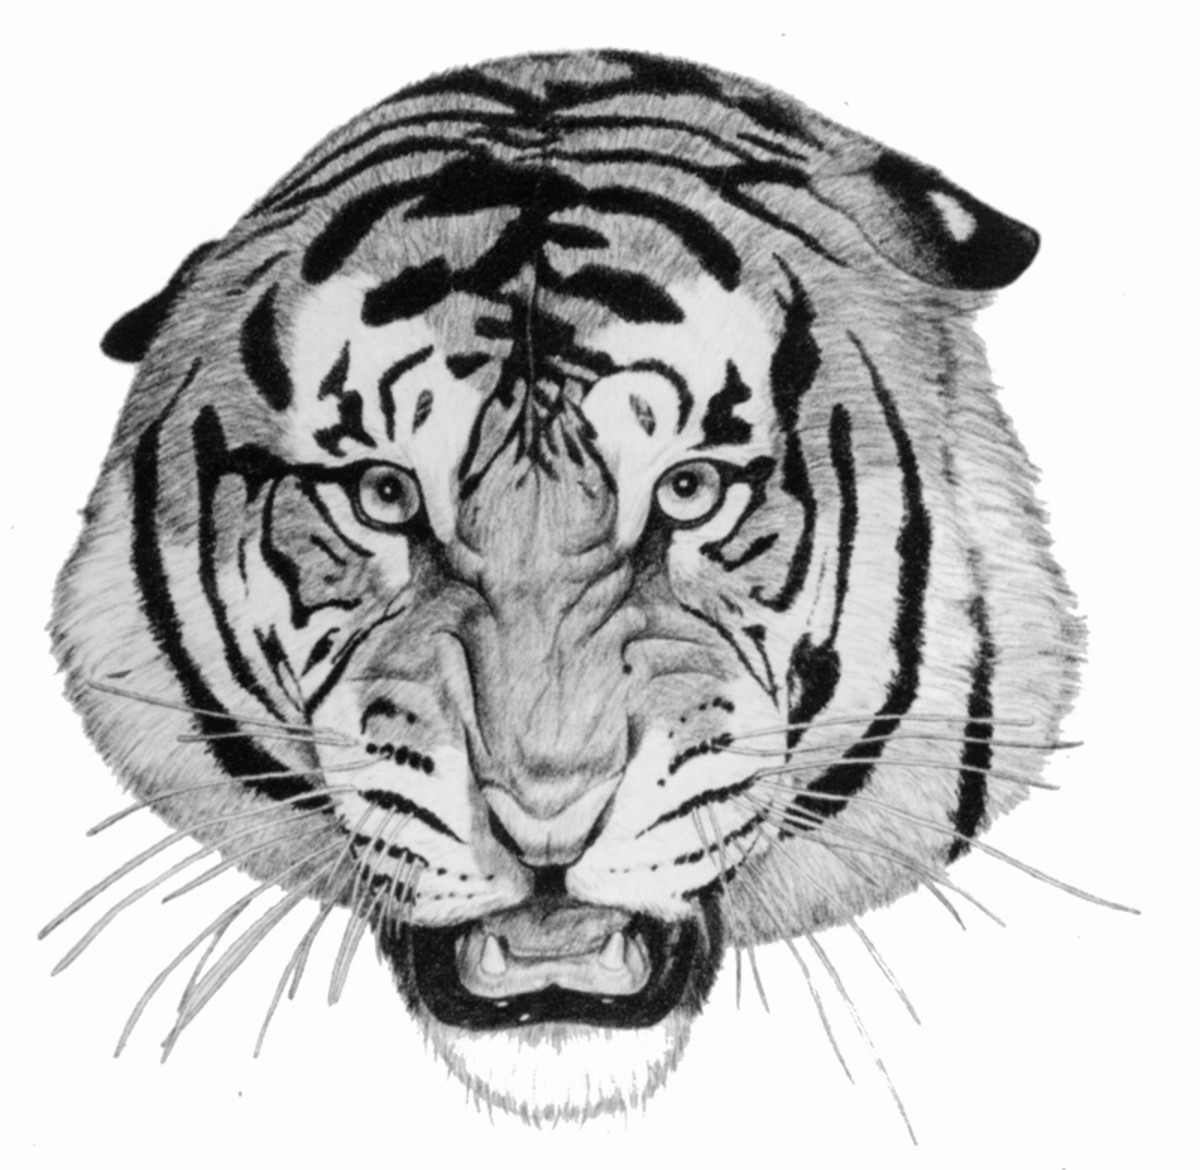 Tiger Head   Pencil rendering 11x14 inches  Limited edition of 140 prints  $15 each  Pencil rendering 11x14 inches  Limited edition of 140 prints  $15 each